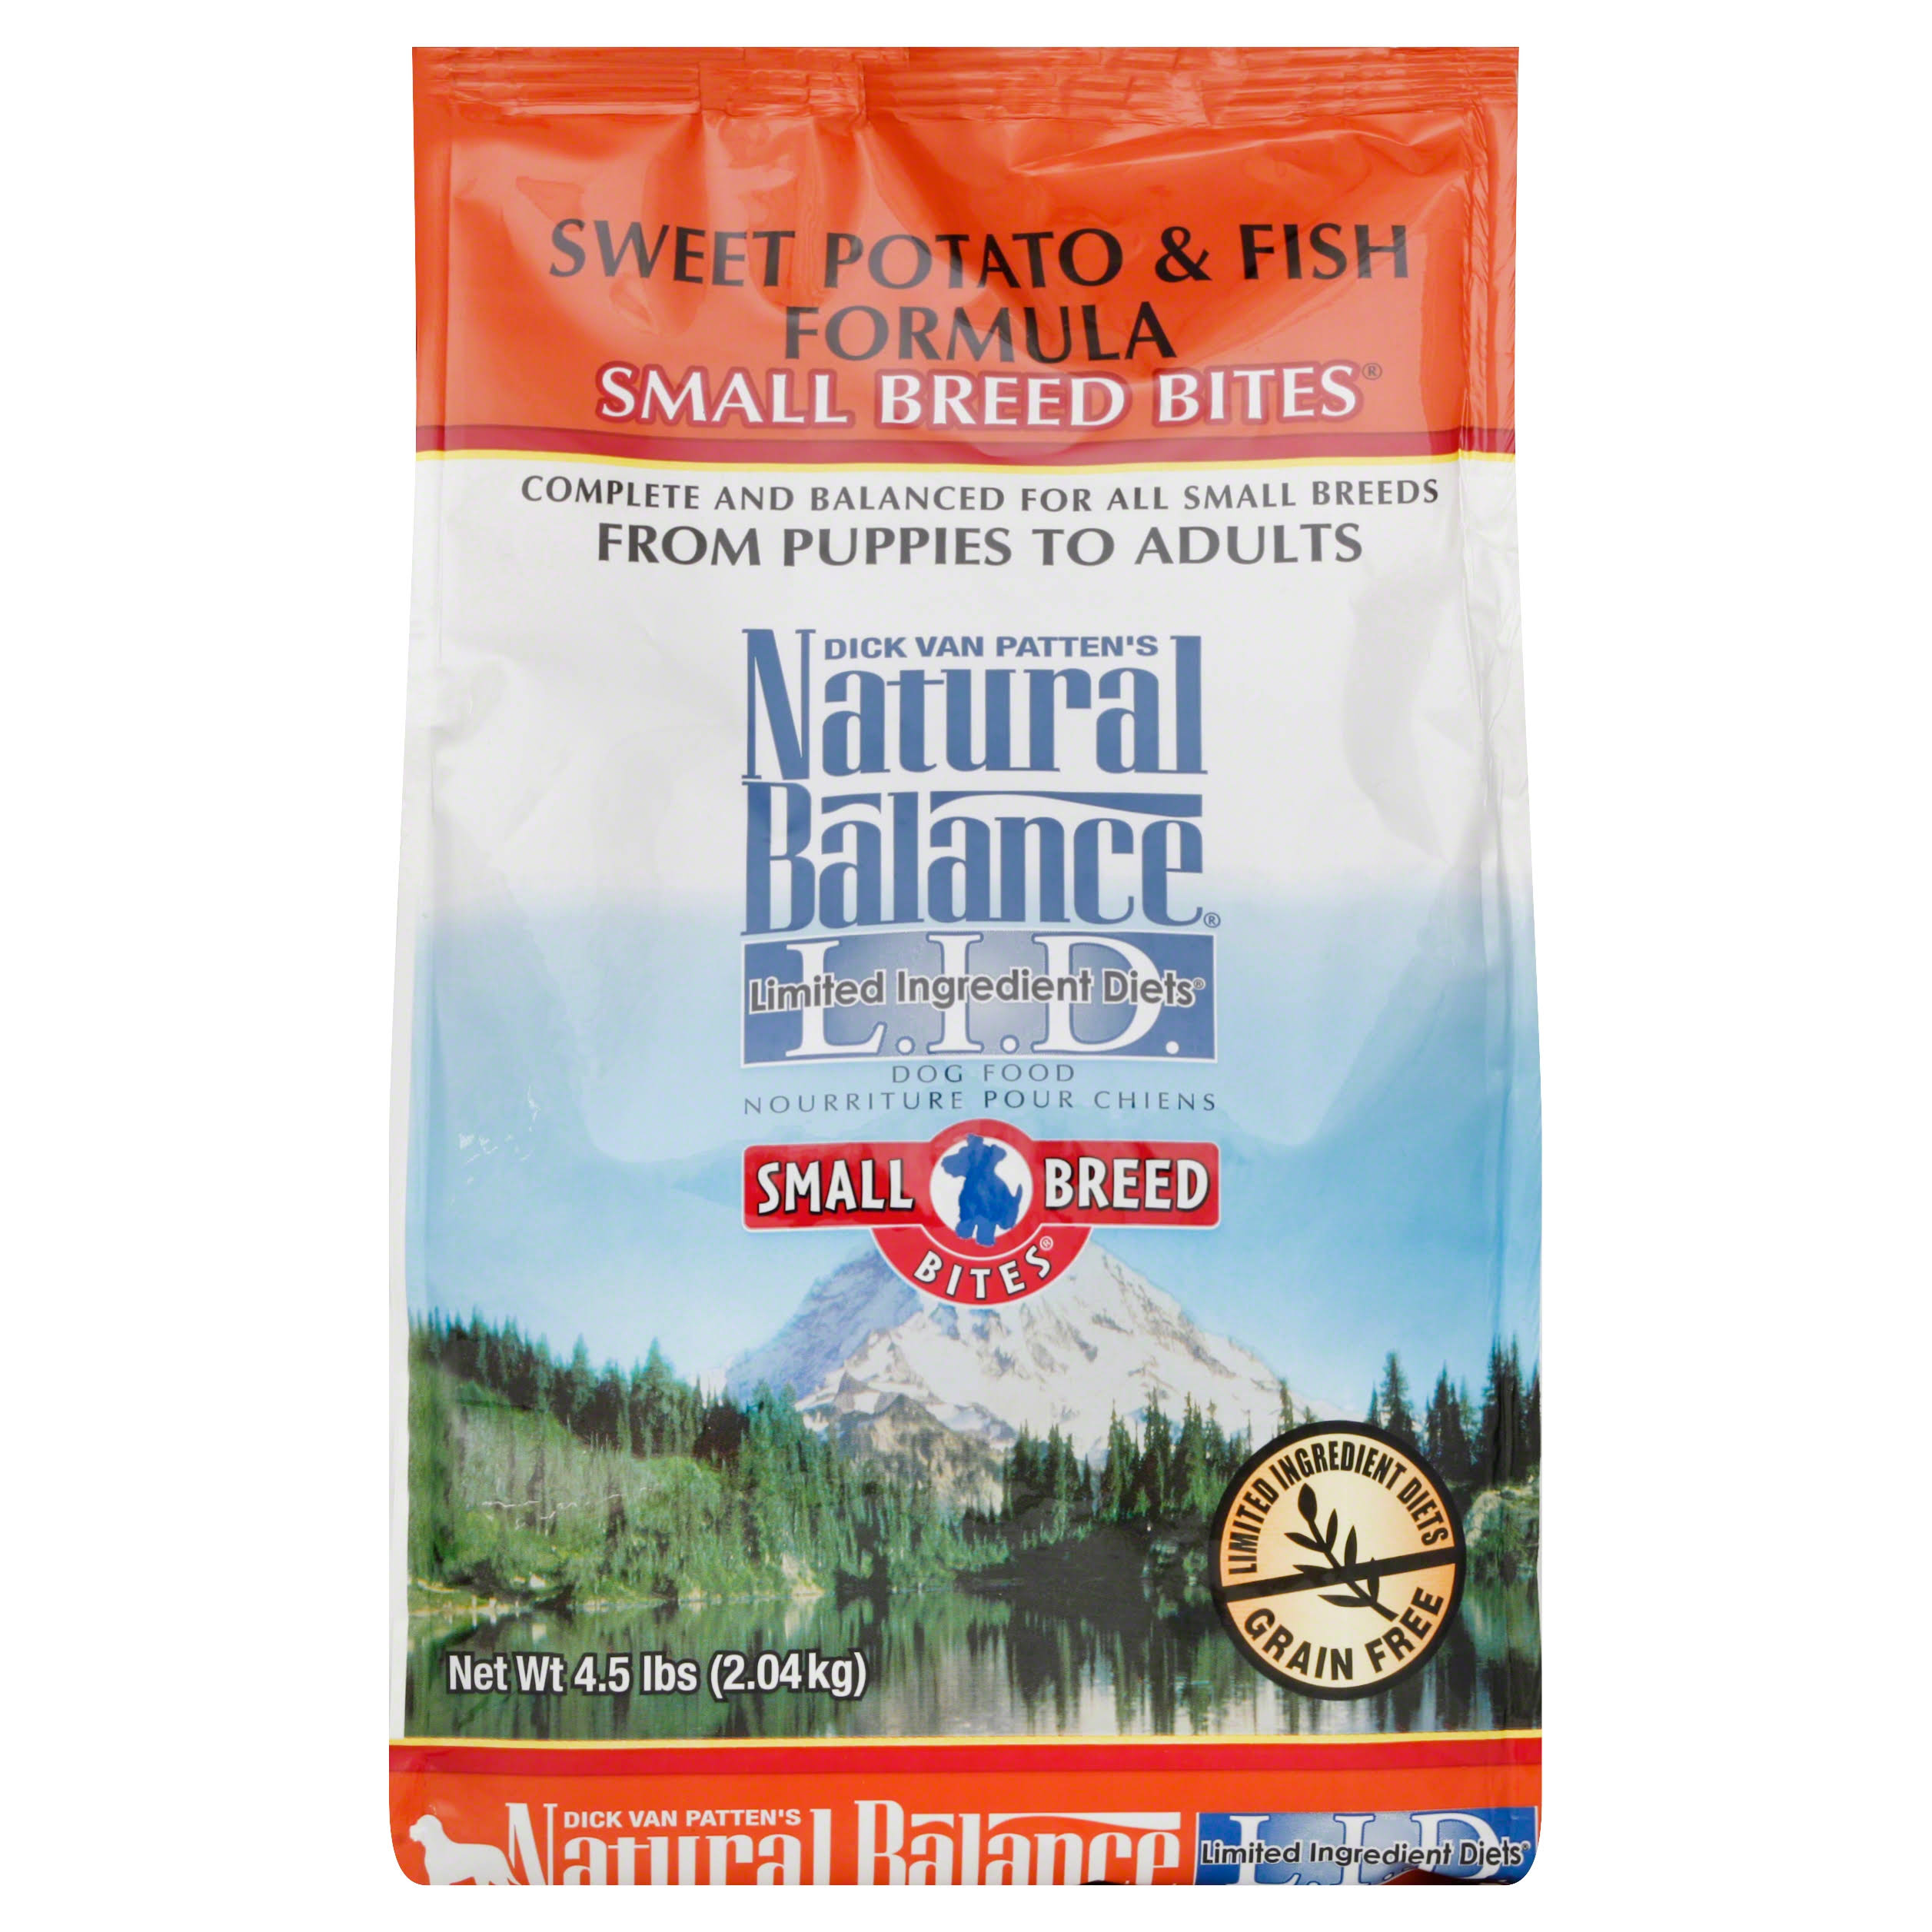 Natural Balance Small Breed Bites Limited Ingredient Diets Dog Food - Sweet Potato and Fish Formula, Dry, 4.5lb